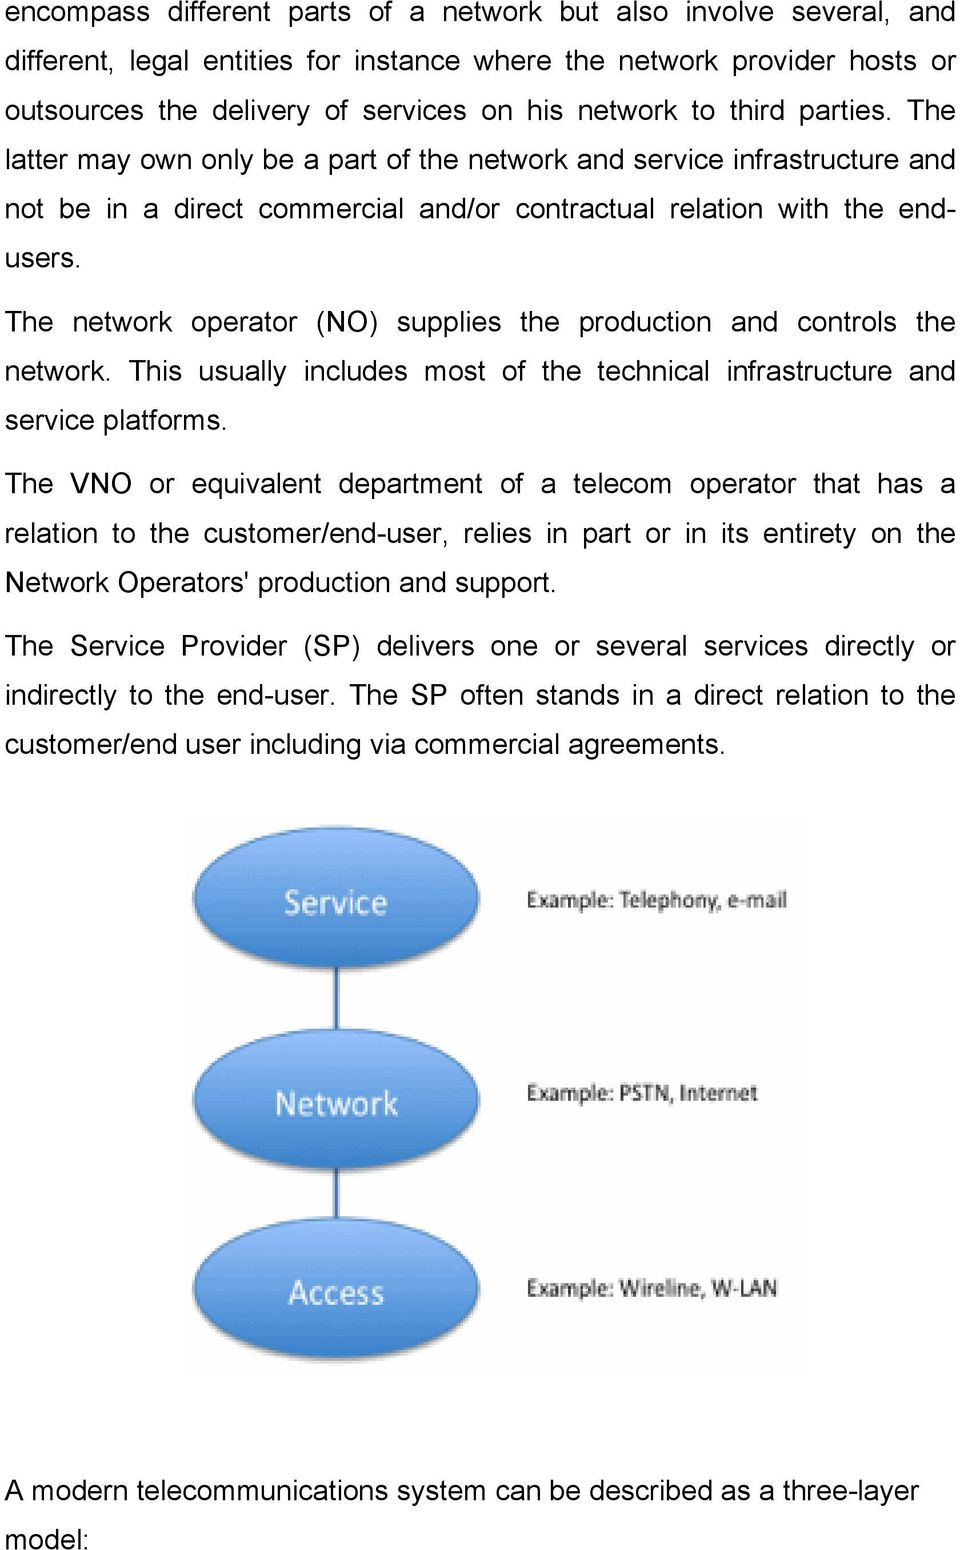 The network operator (NO) supplies the production and controls the network. This usually includes most of the technical infrastructure and service platforms.